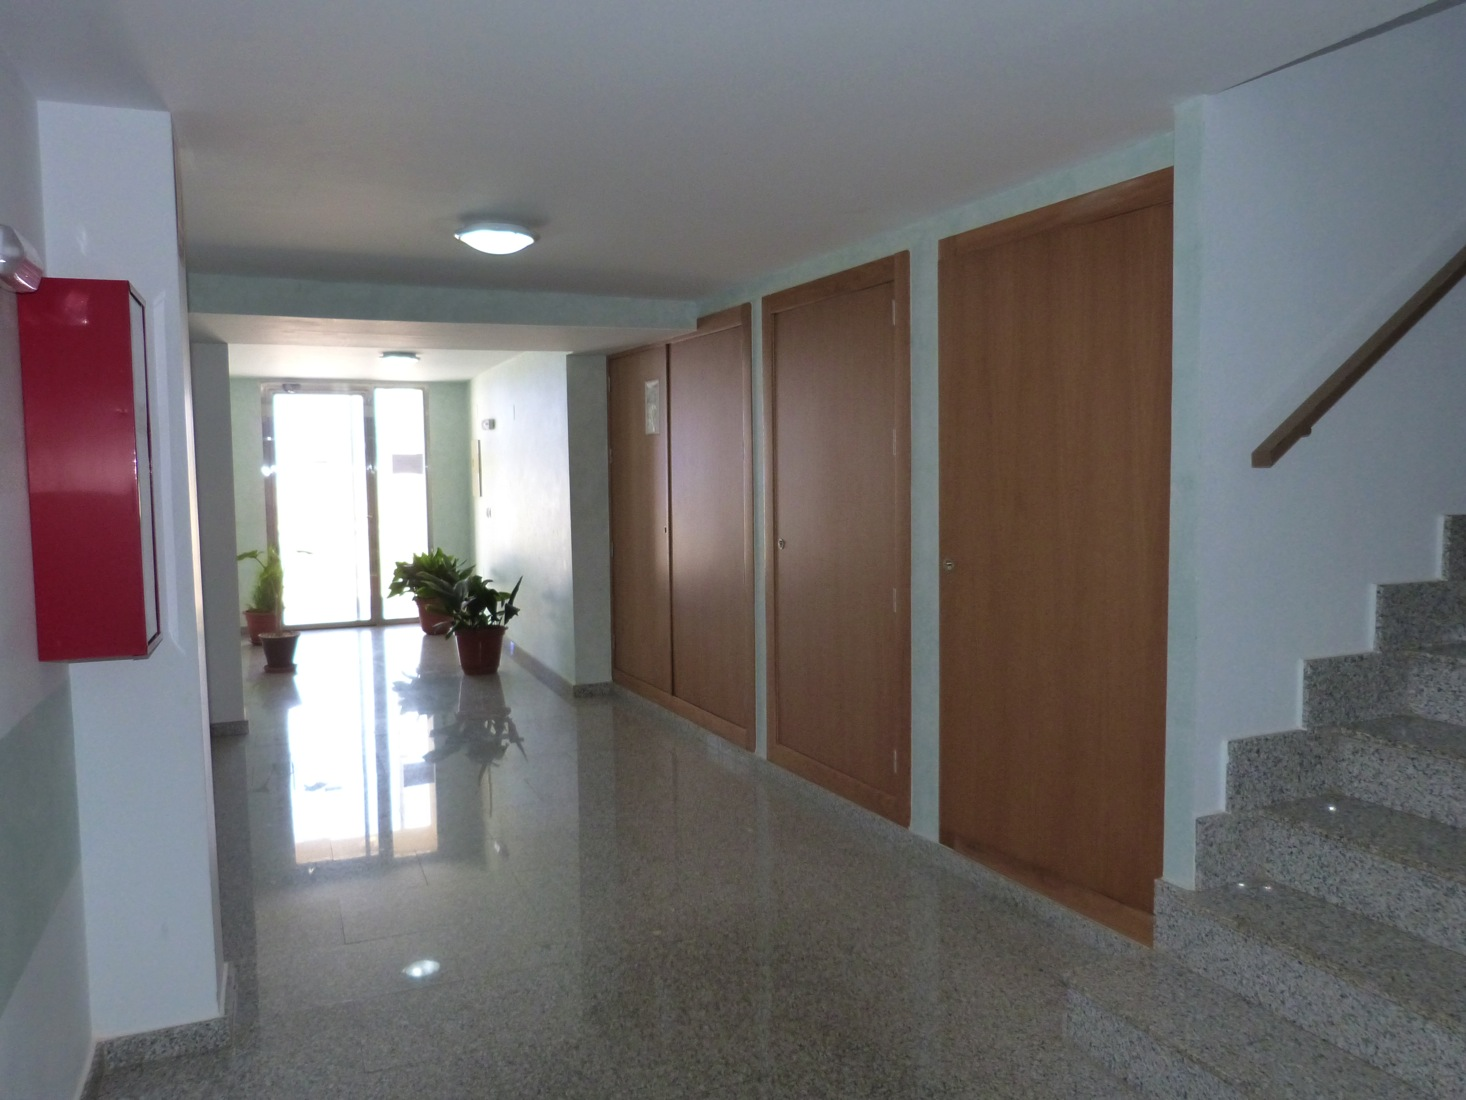 MODERN 2 BED APARTMENT - 300m TO THE BEACH